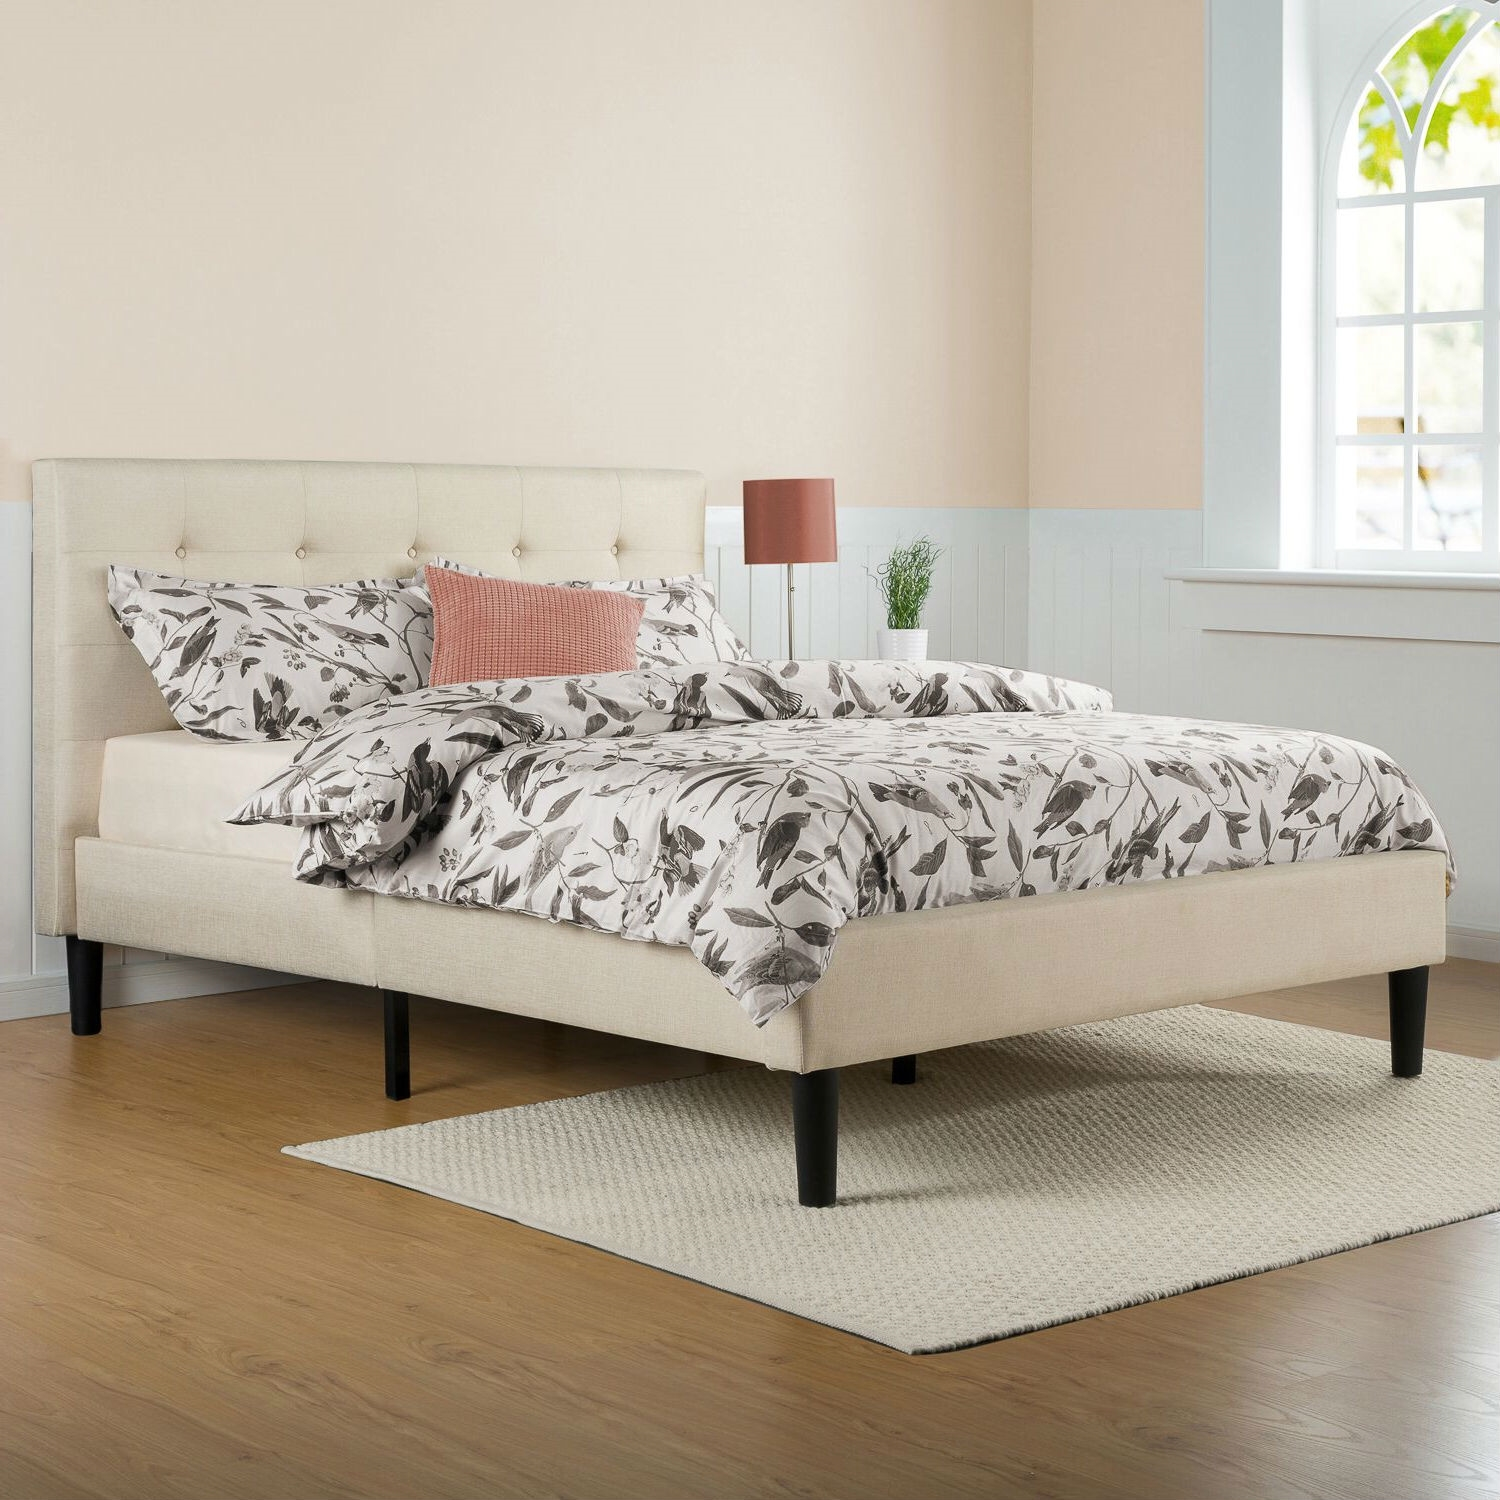 Full Size Taupe Beige Upholstered Platform Bed Frame With